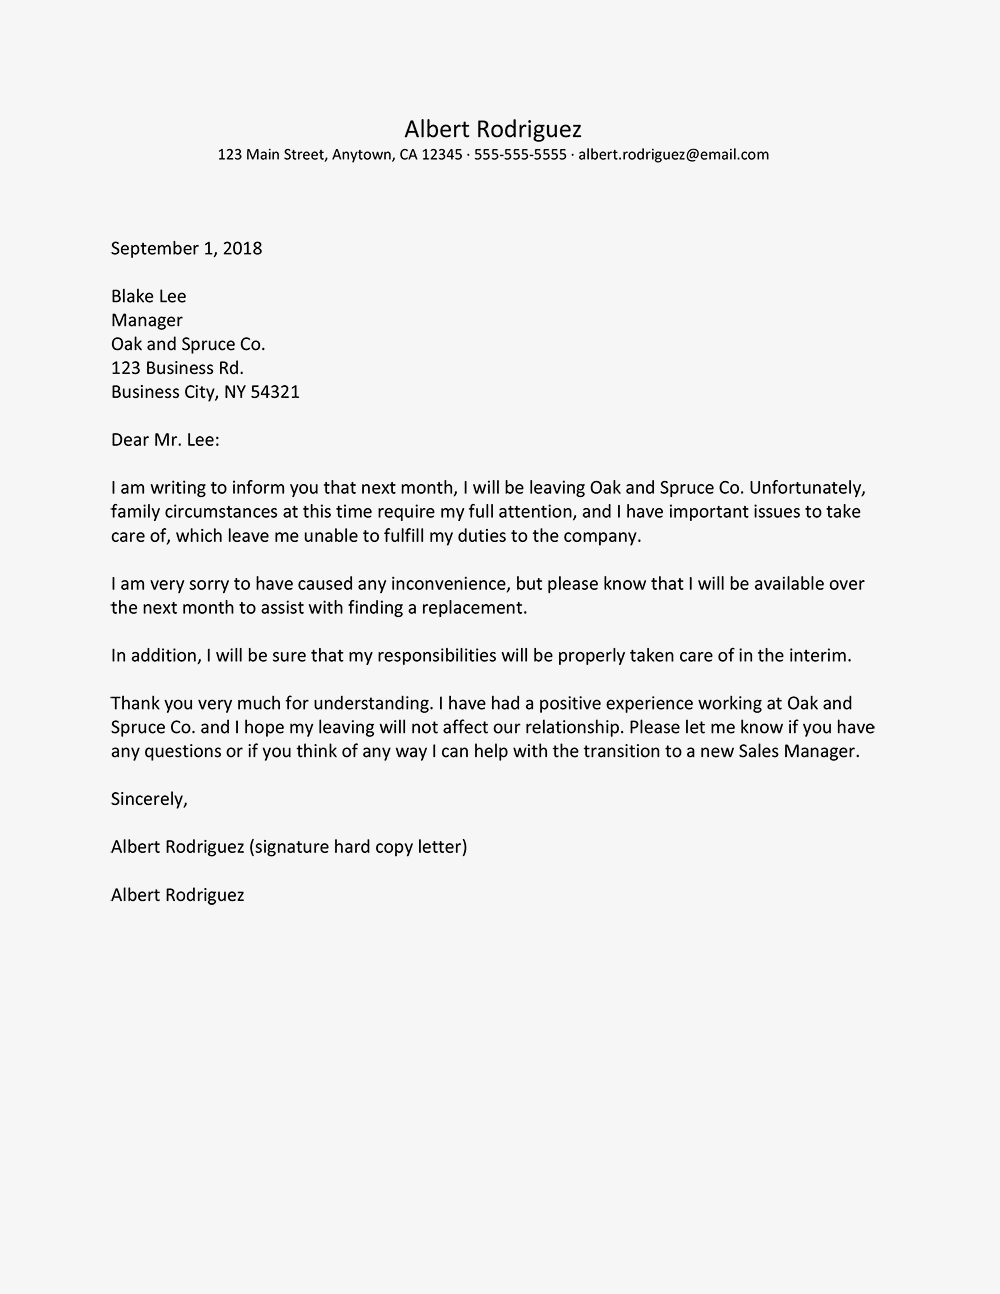 Resignation Letter For Family Reasons